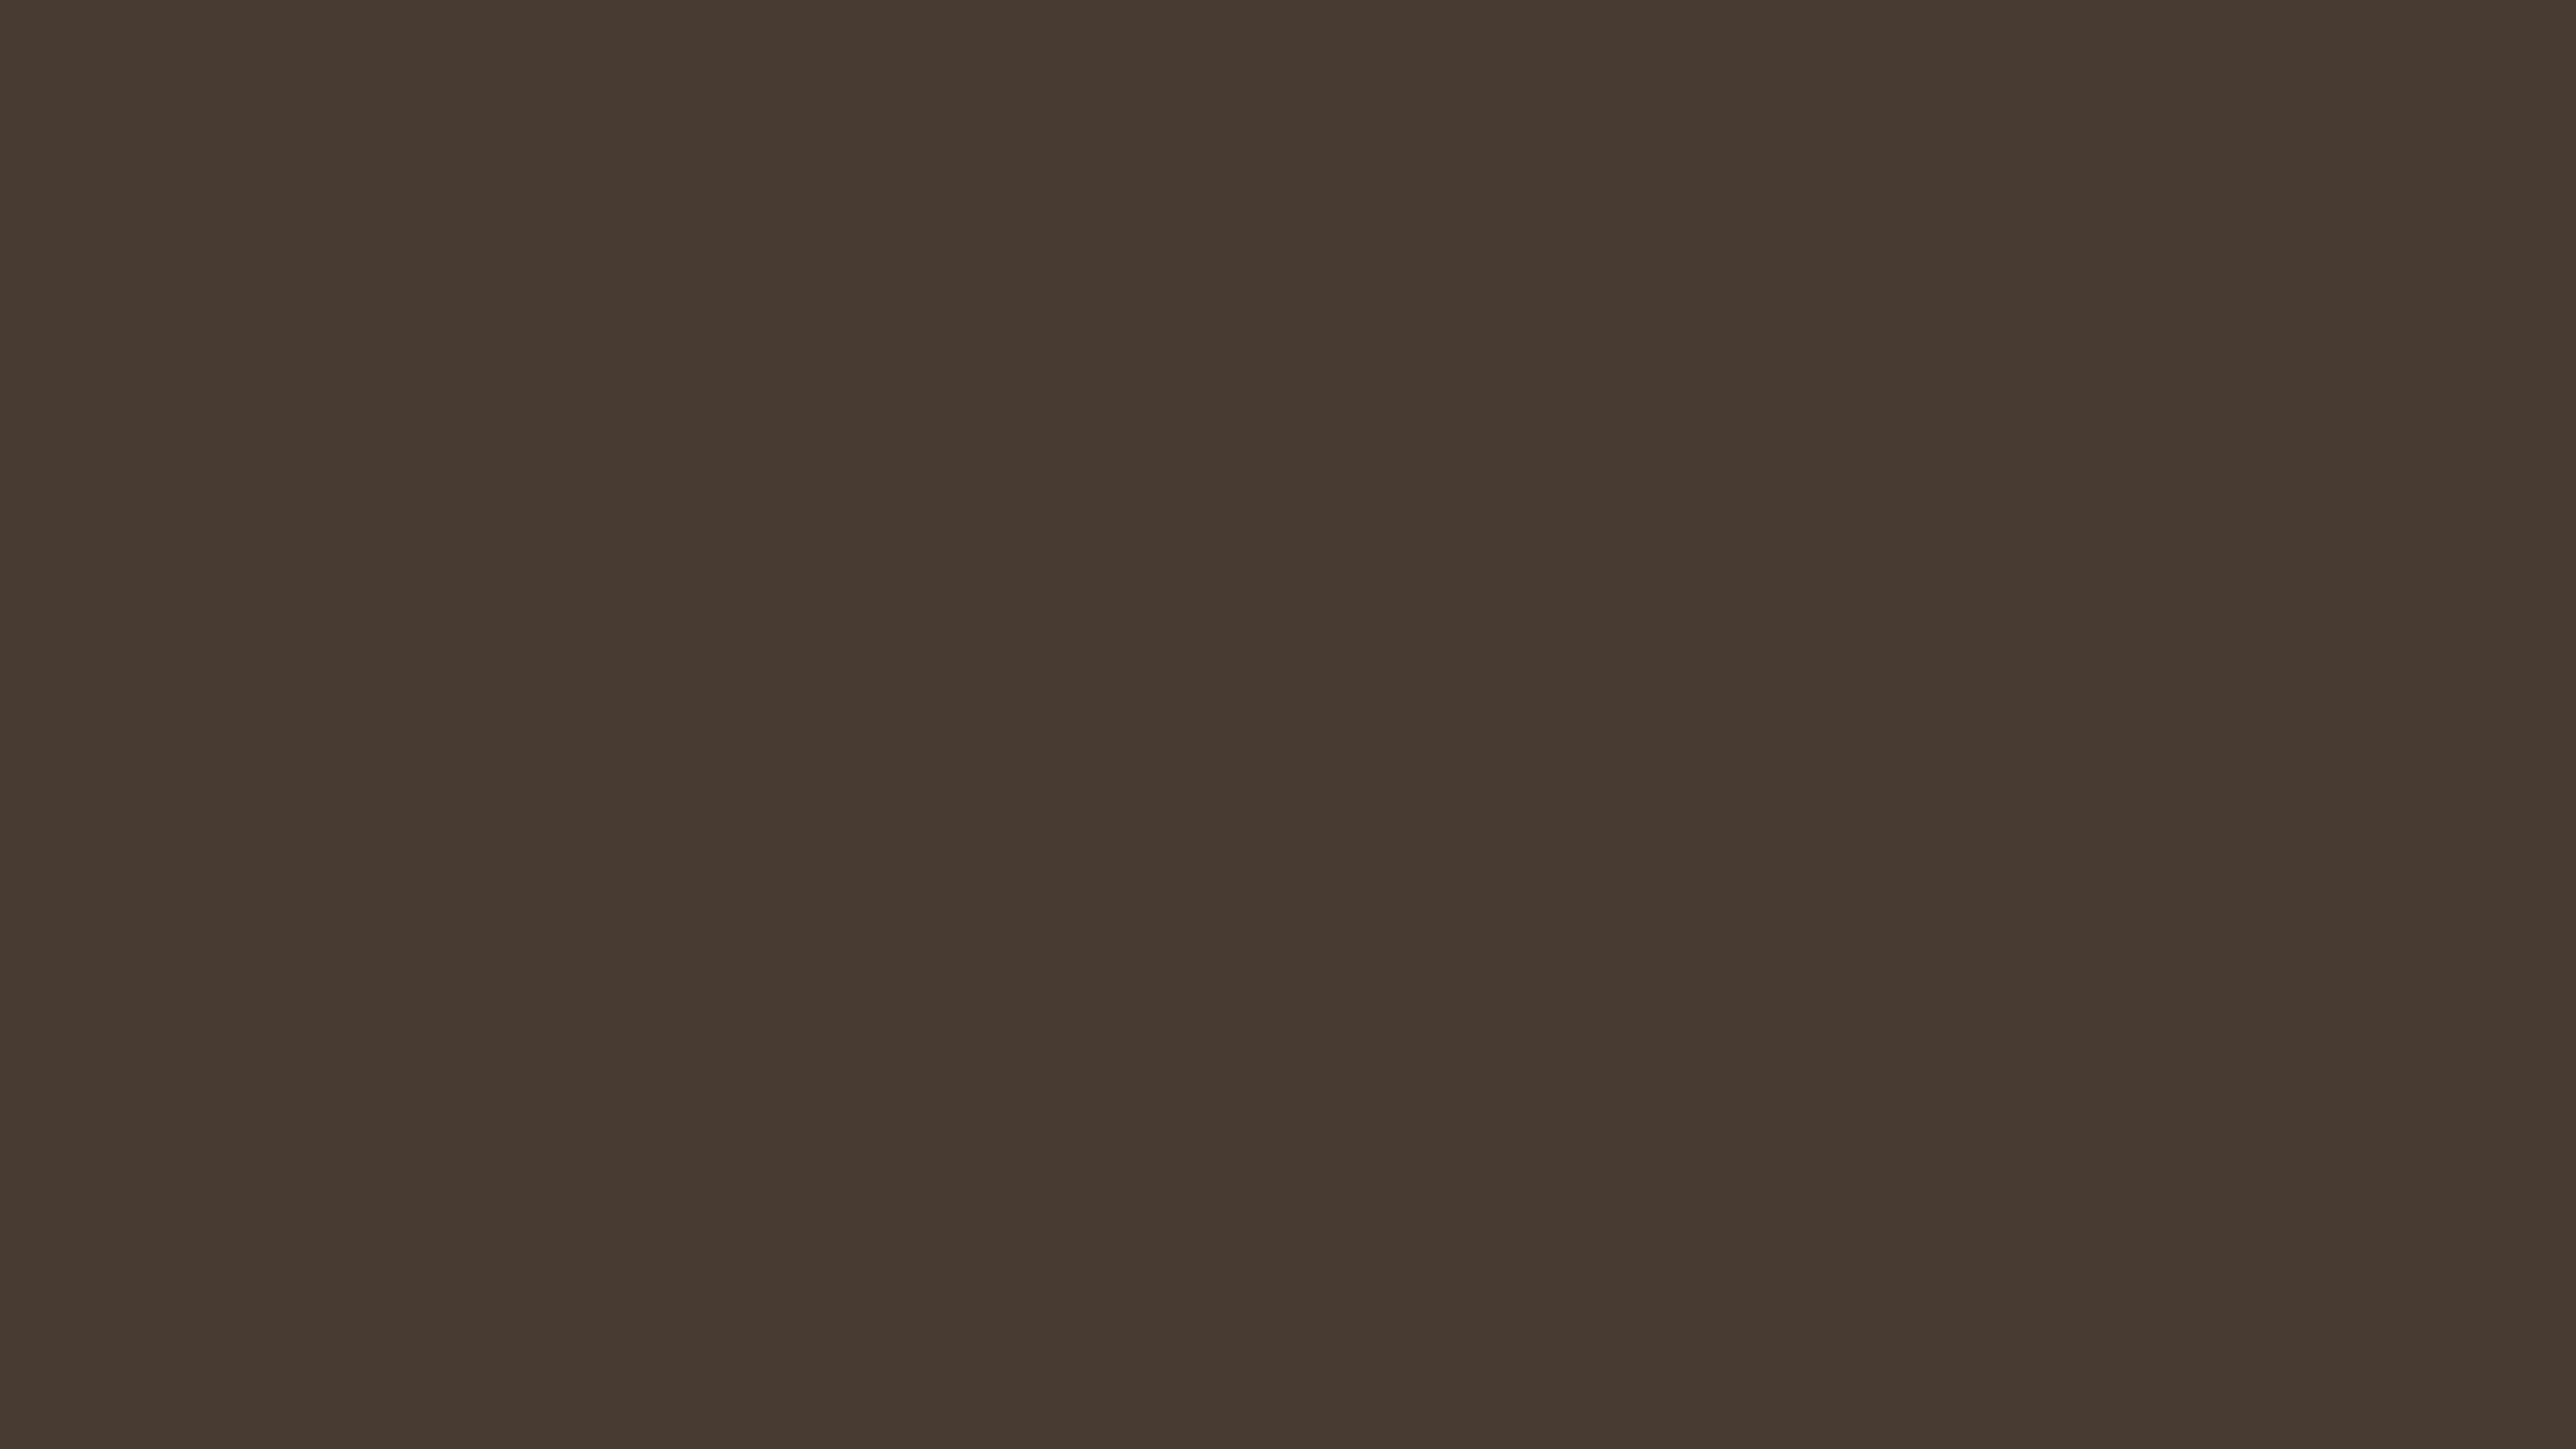 4096x2304 Taupe Solid Color Background